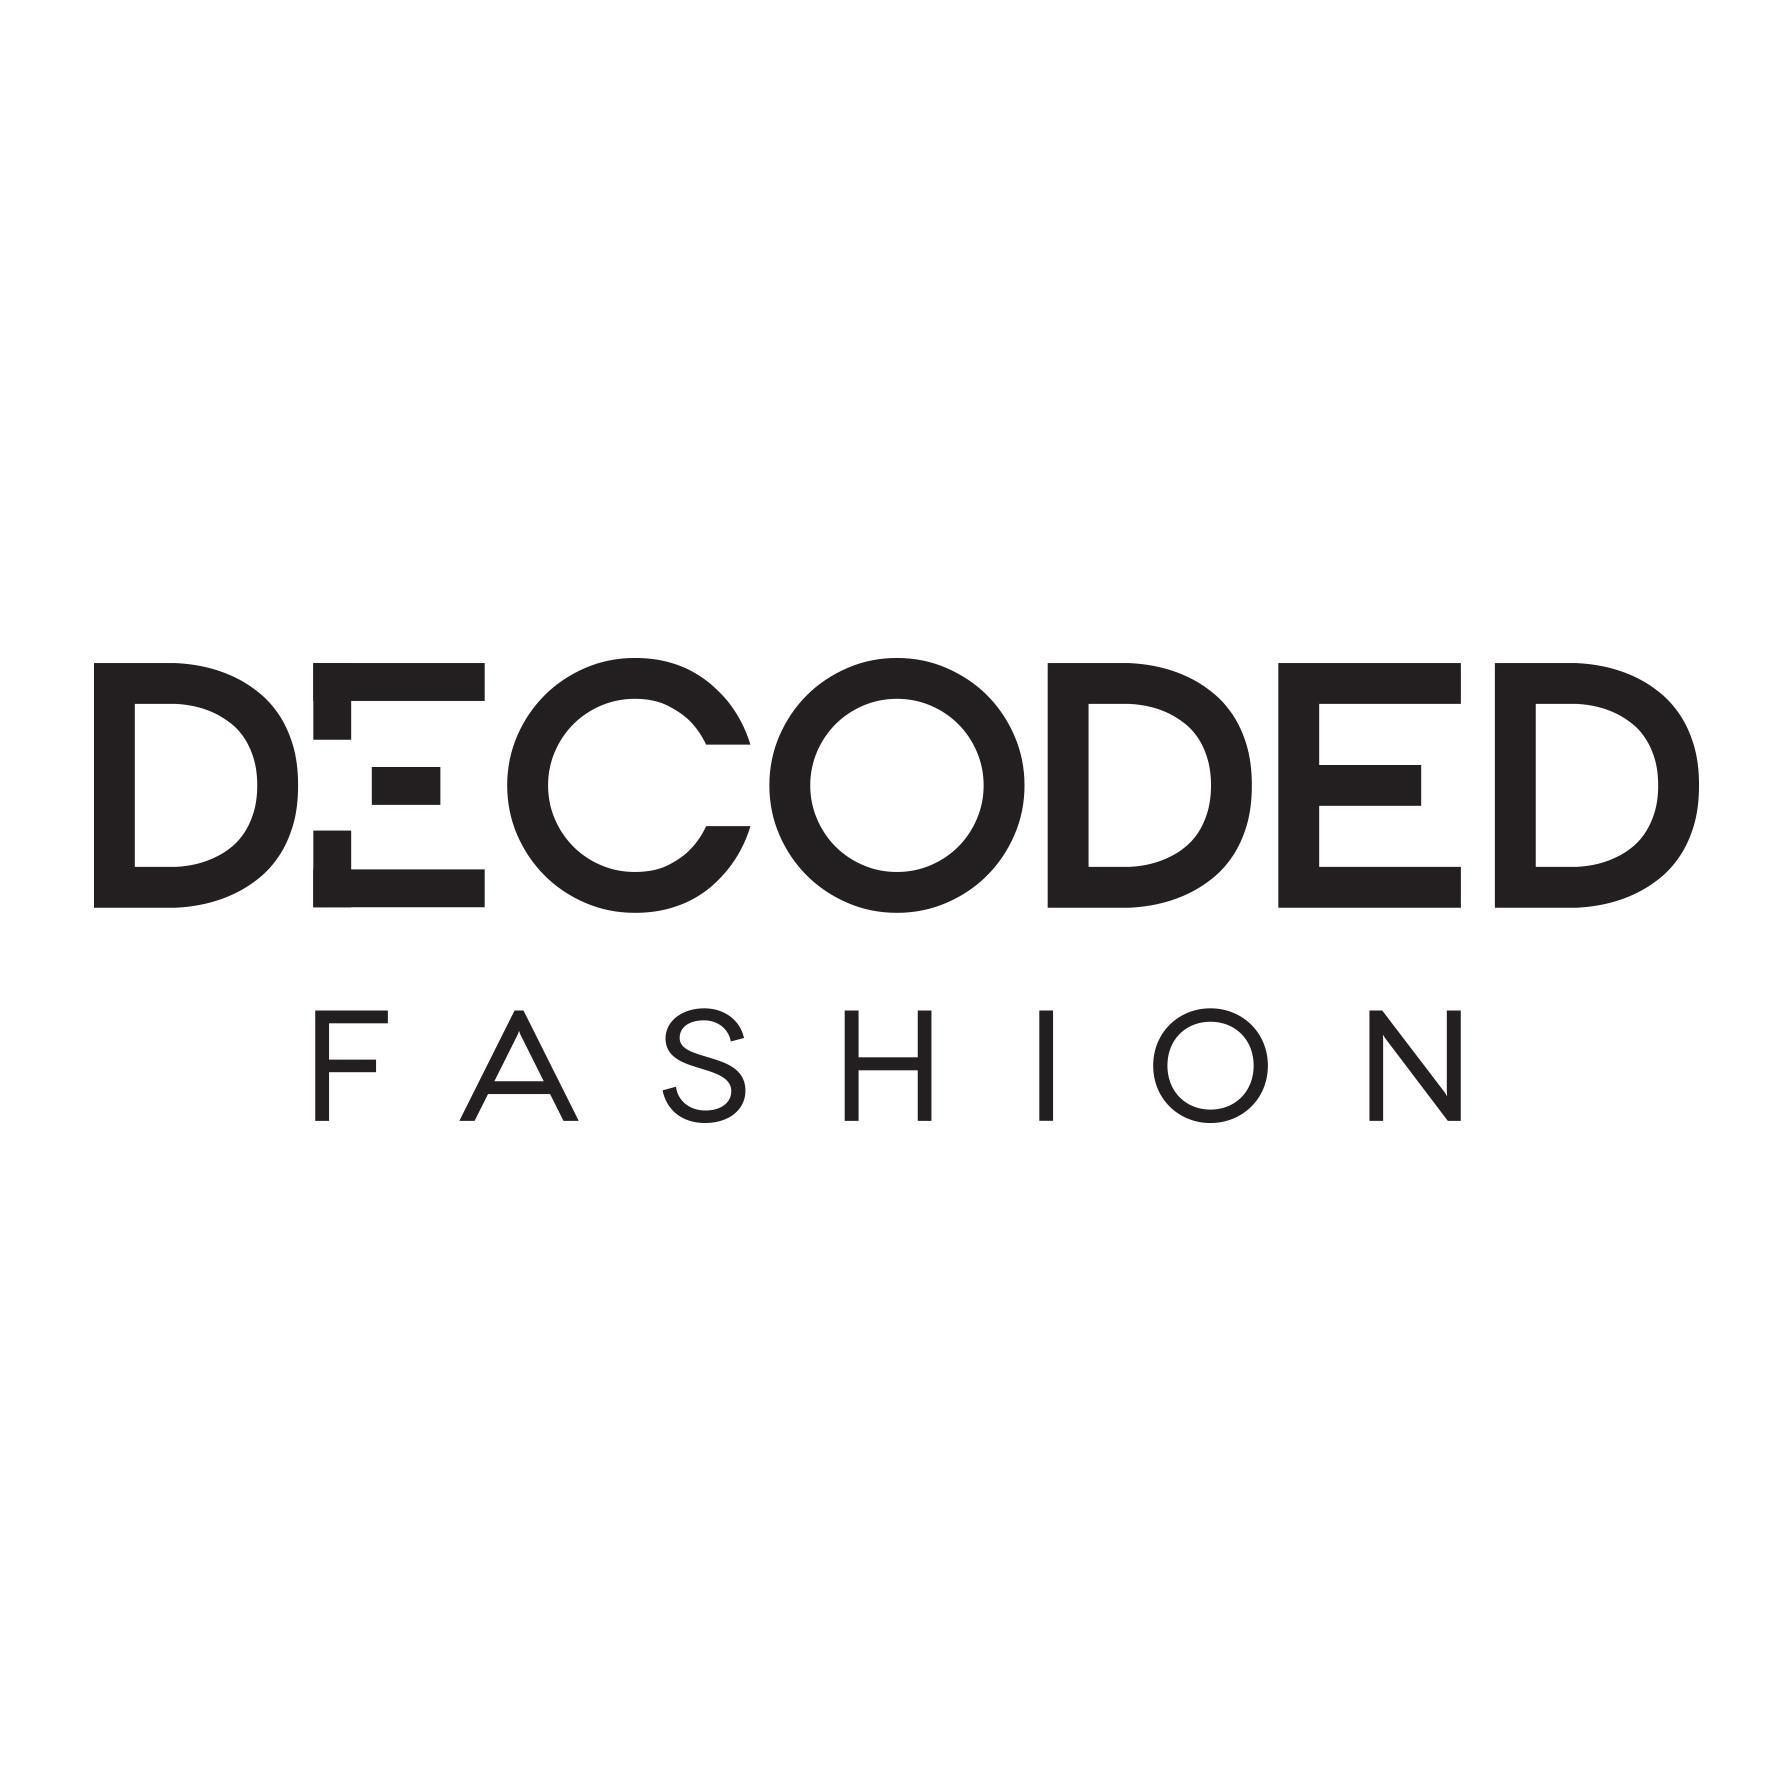 Decoded Fashion : Content, A Brand's Best Friend